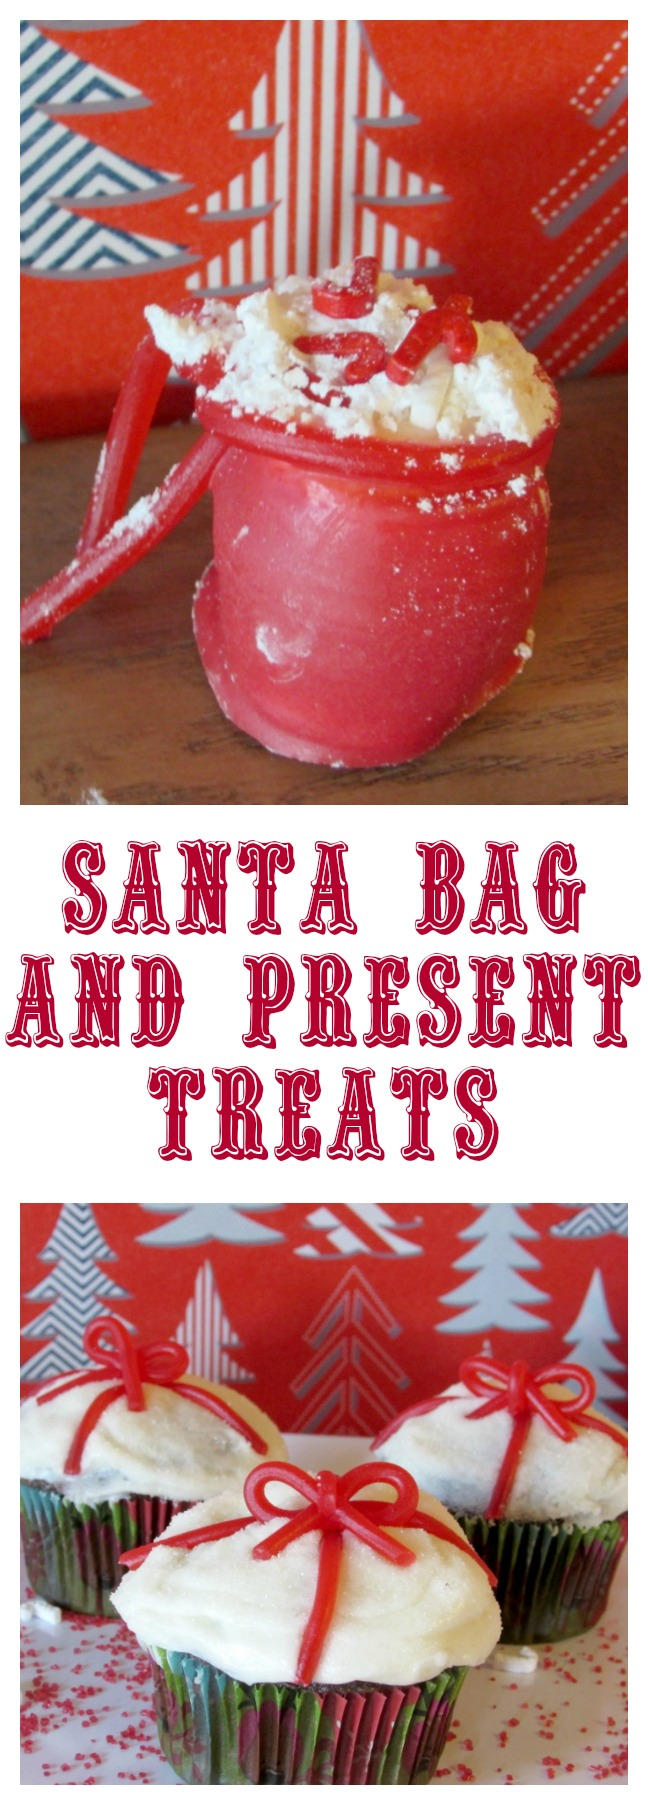 Santa Bag and Present Treats. How to make marshmallow Santa bags with snow and candy canes inside. Also present cupcakes for Santa